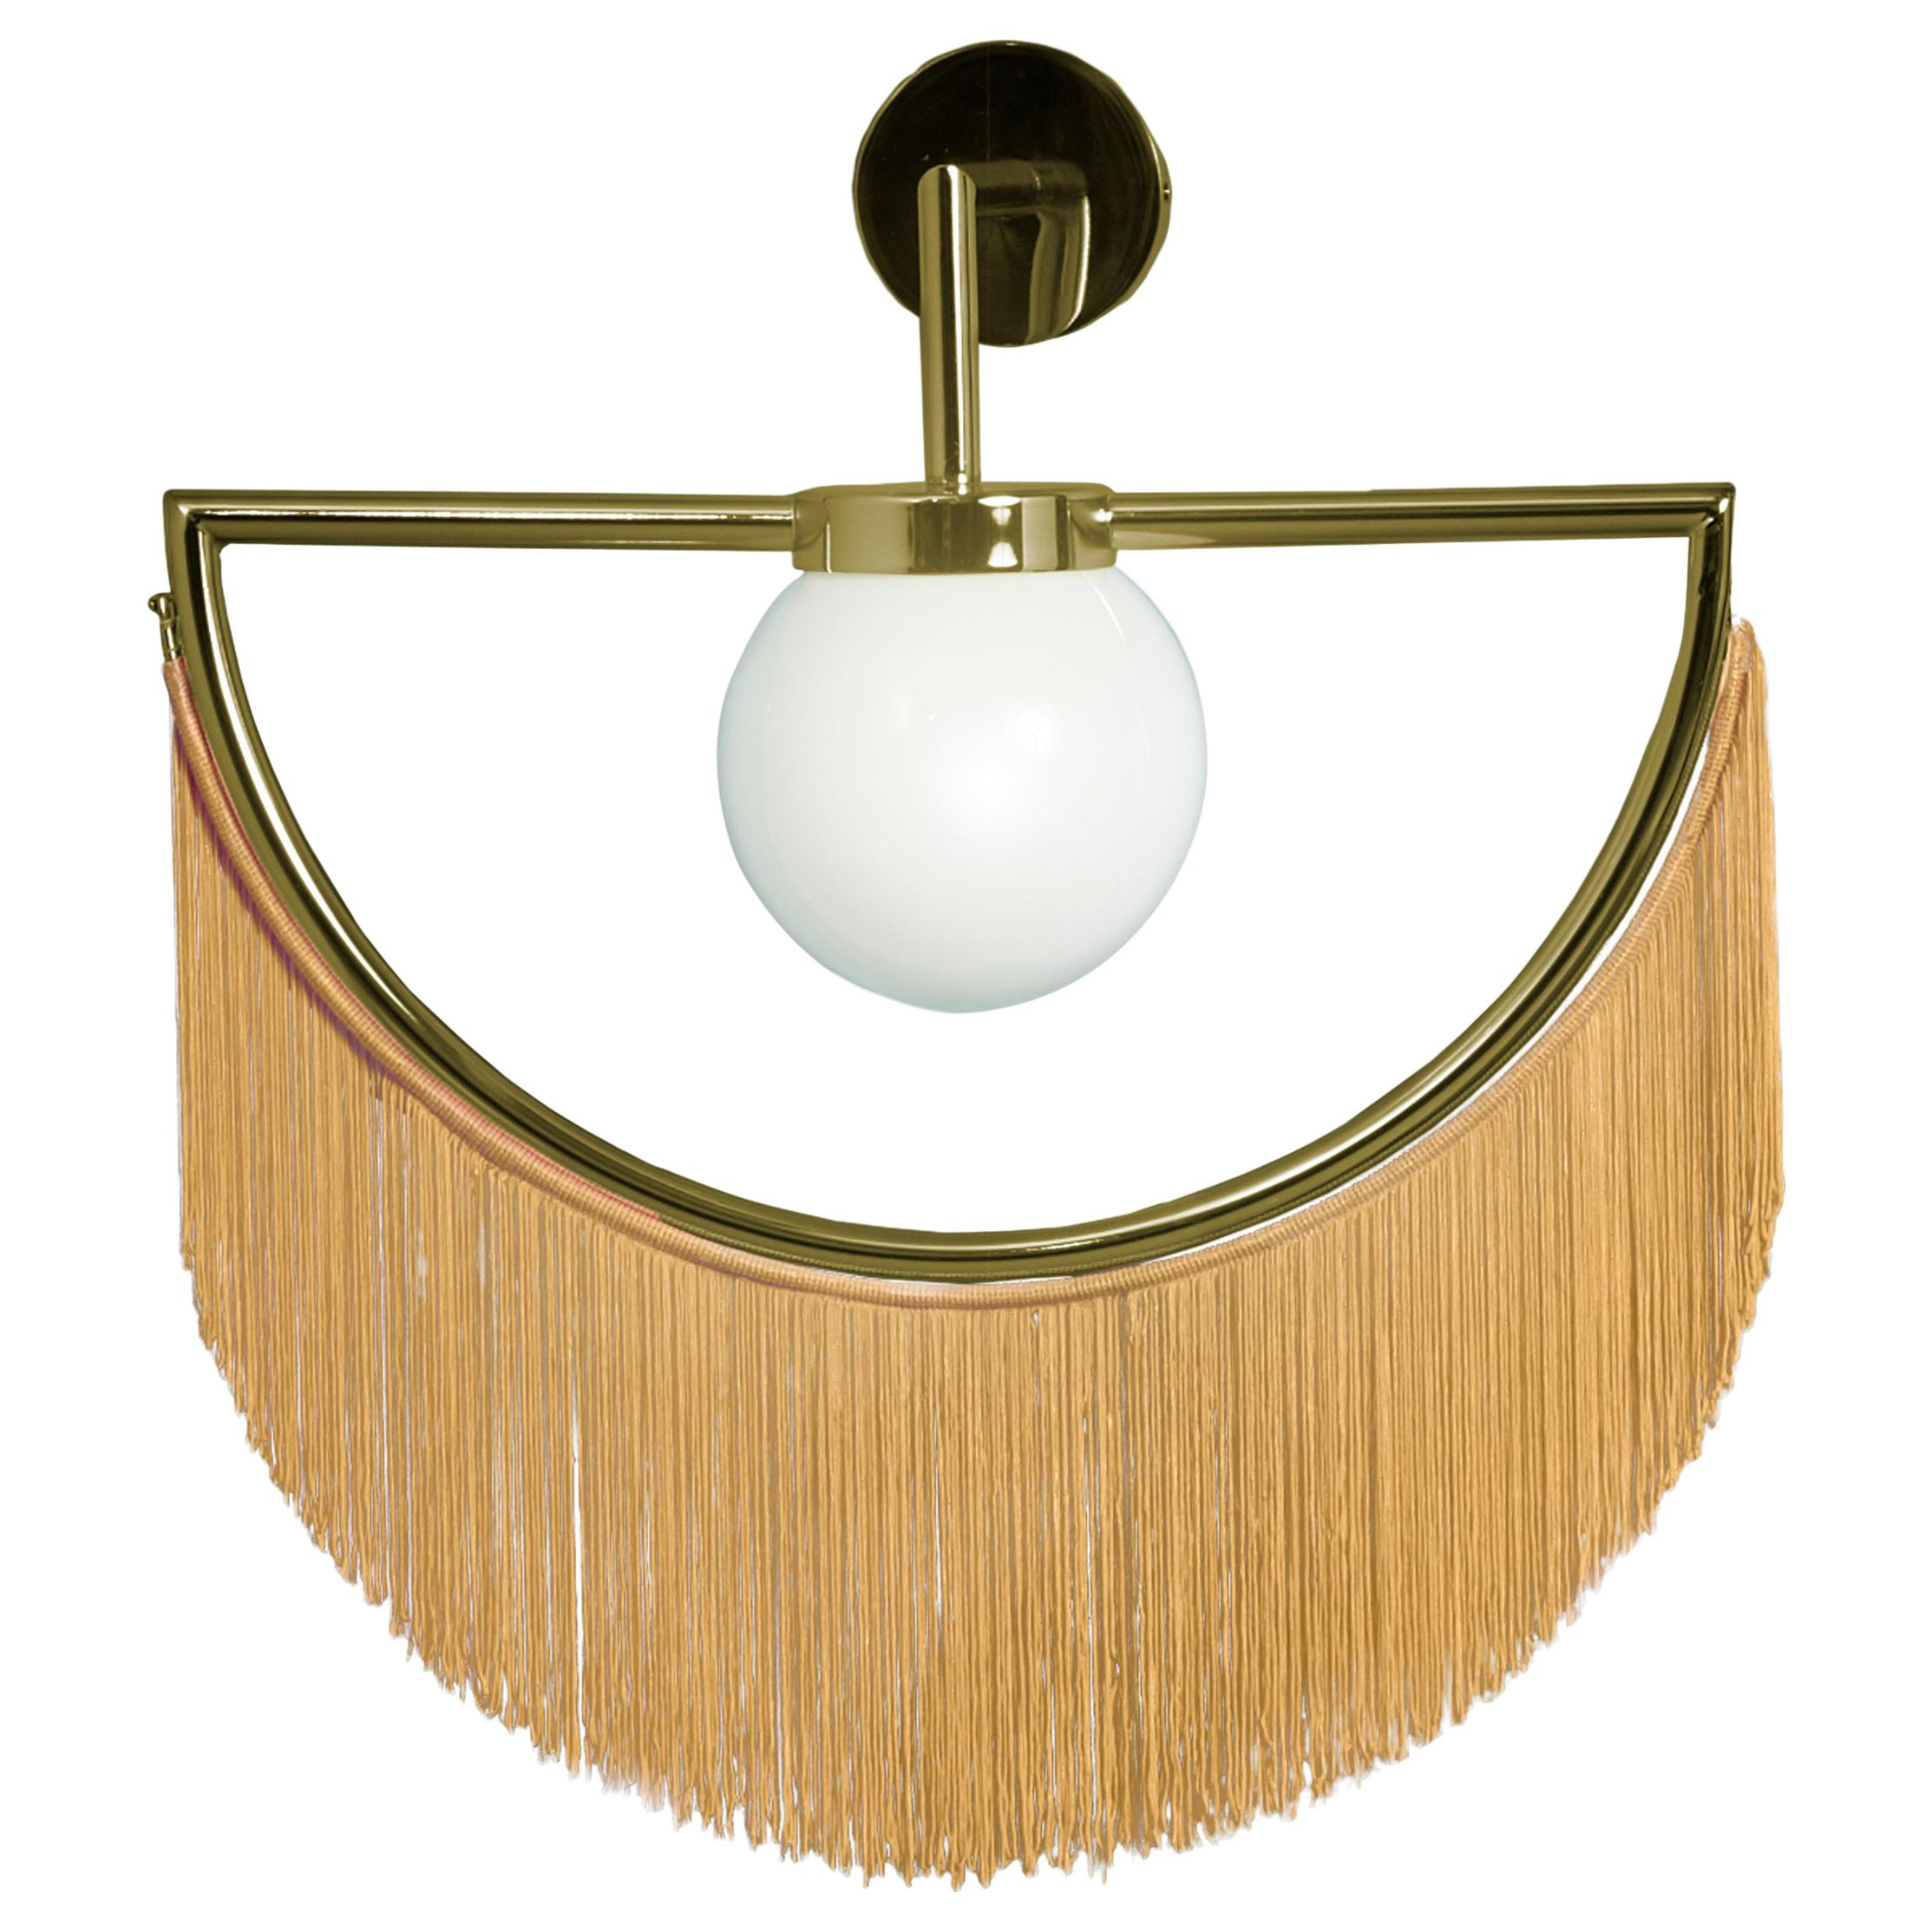 Wink Gold-Plated Wall Lamp with Yellow Fringes